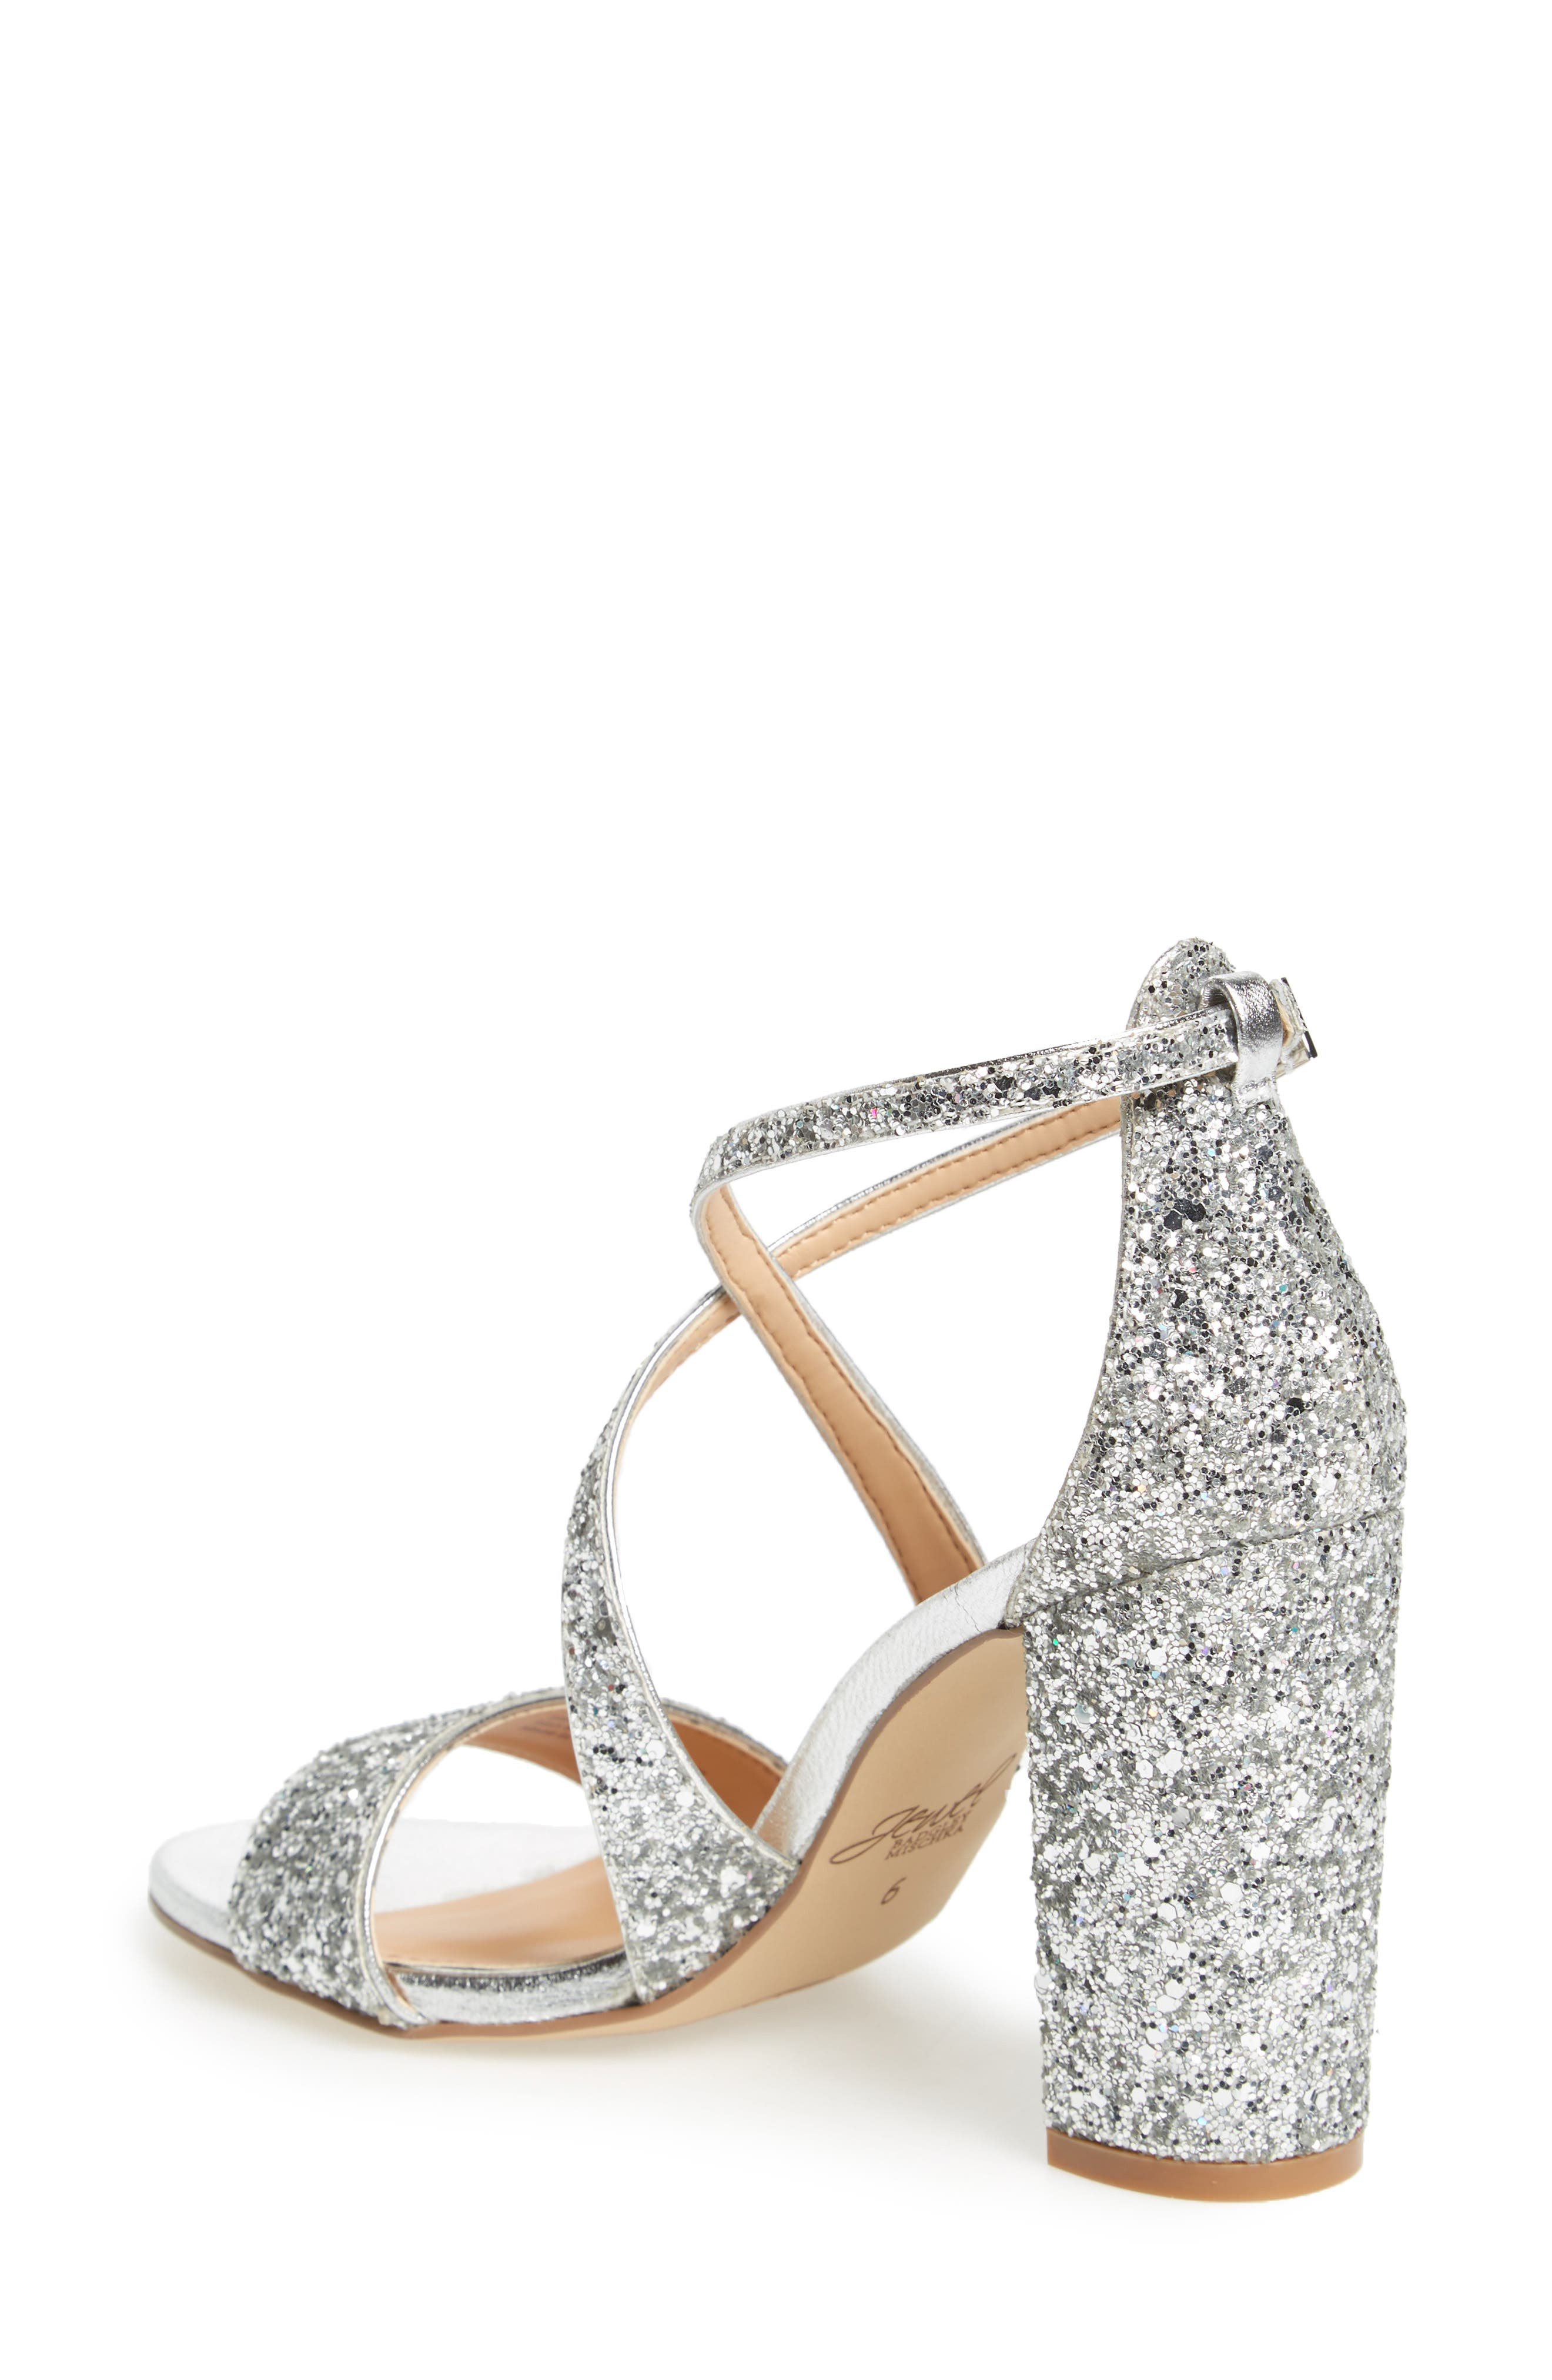 Cook Block Heel Glitter Sandal,                             Alternate thumbnail 2, color,                             SILVER LEATHER